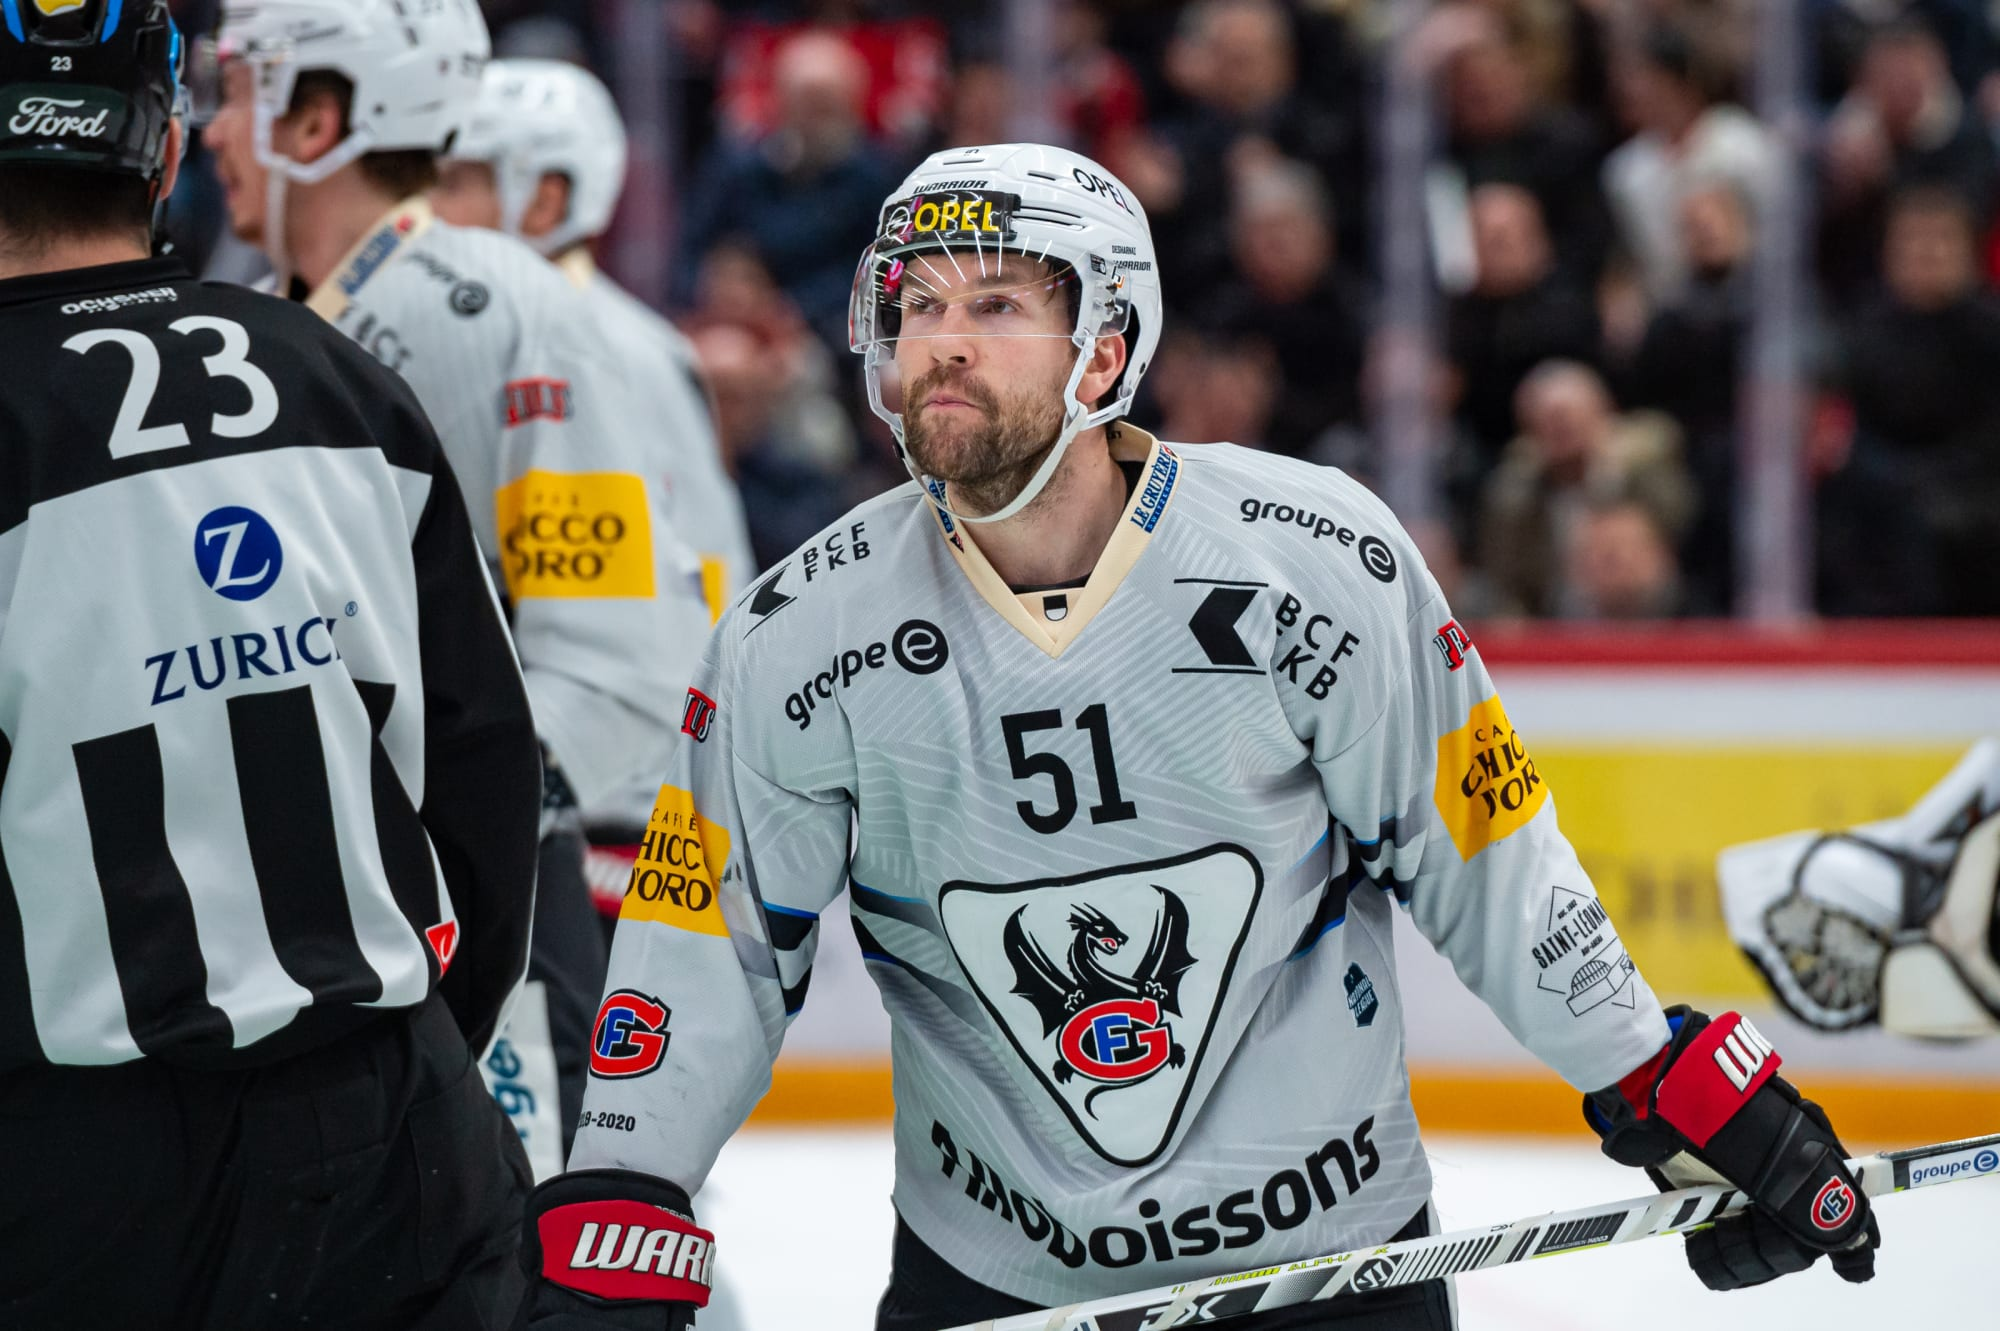 Canadiens: David Desharnais and the ECHL Trials